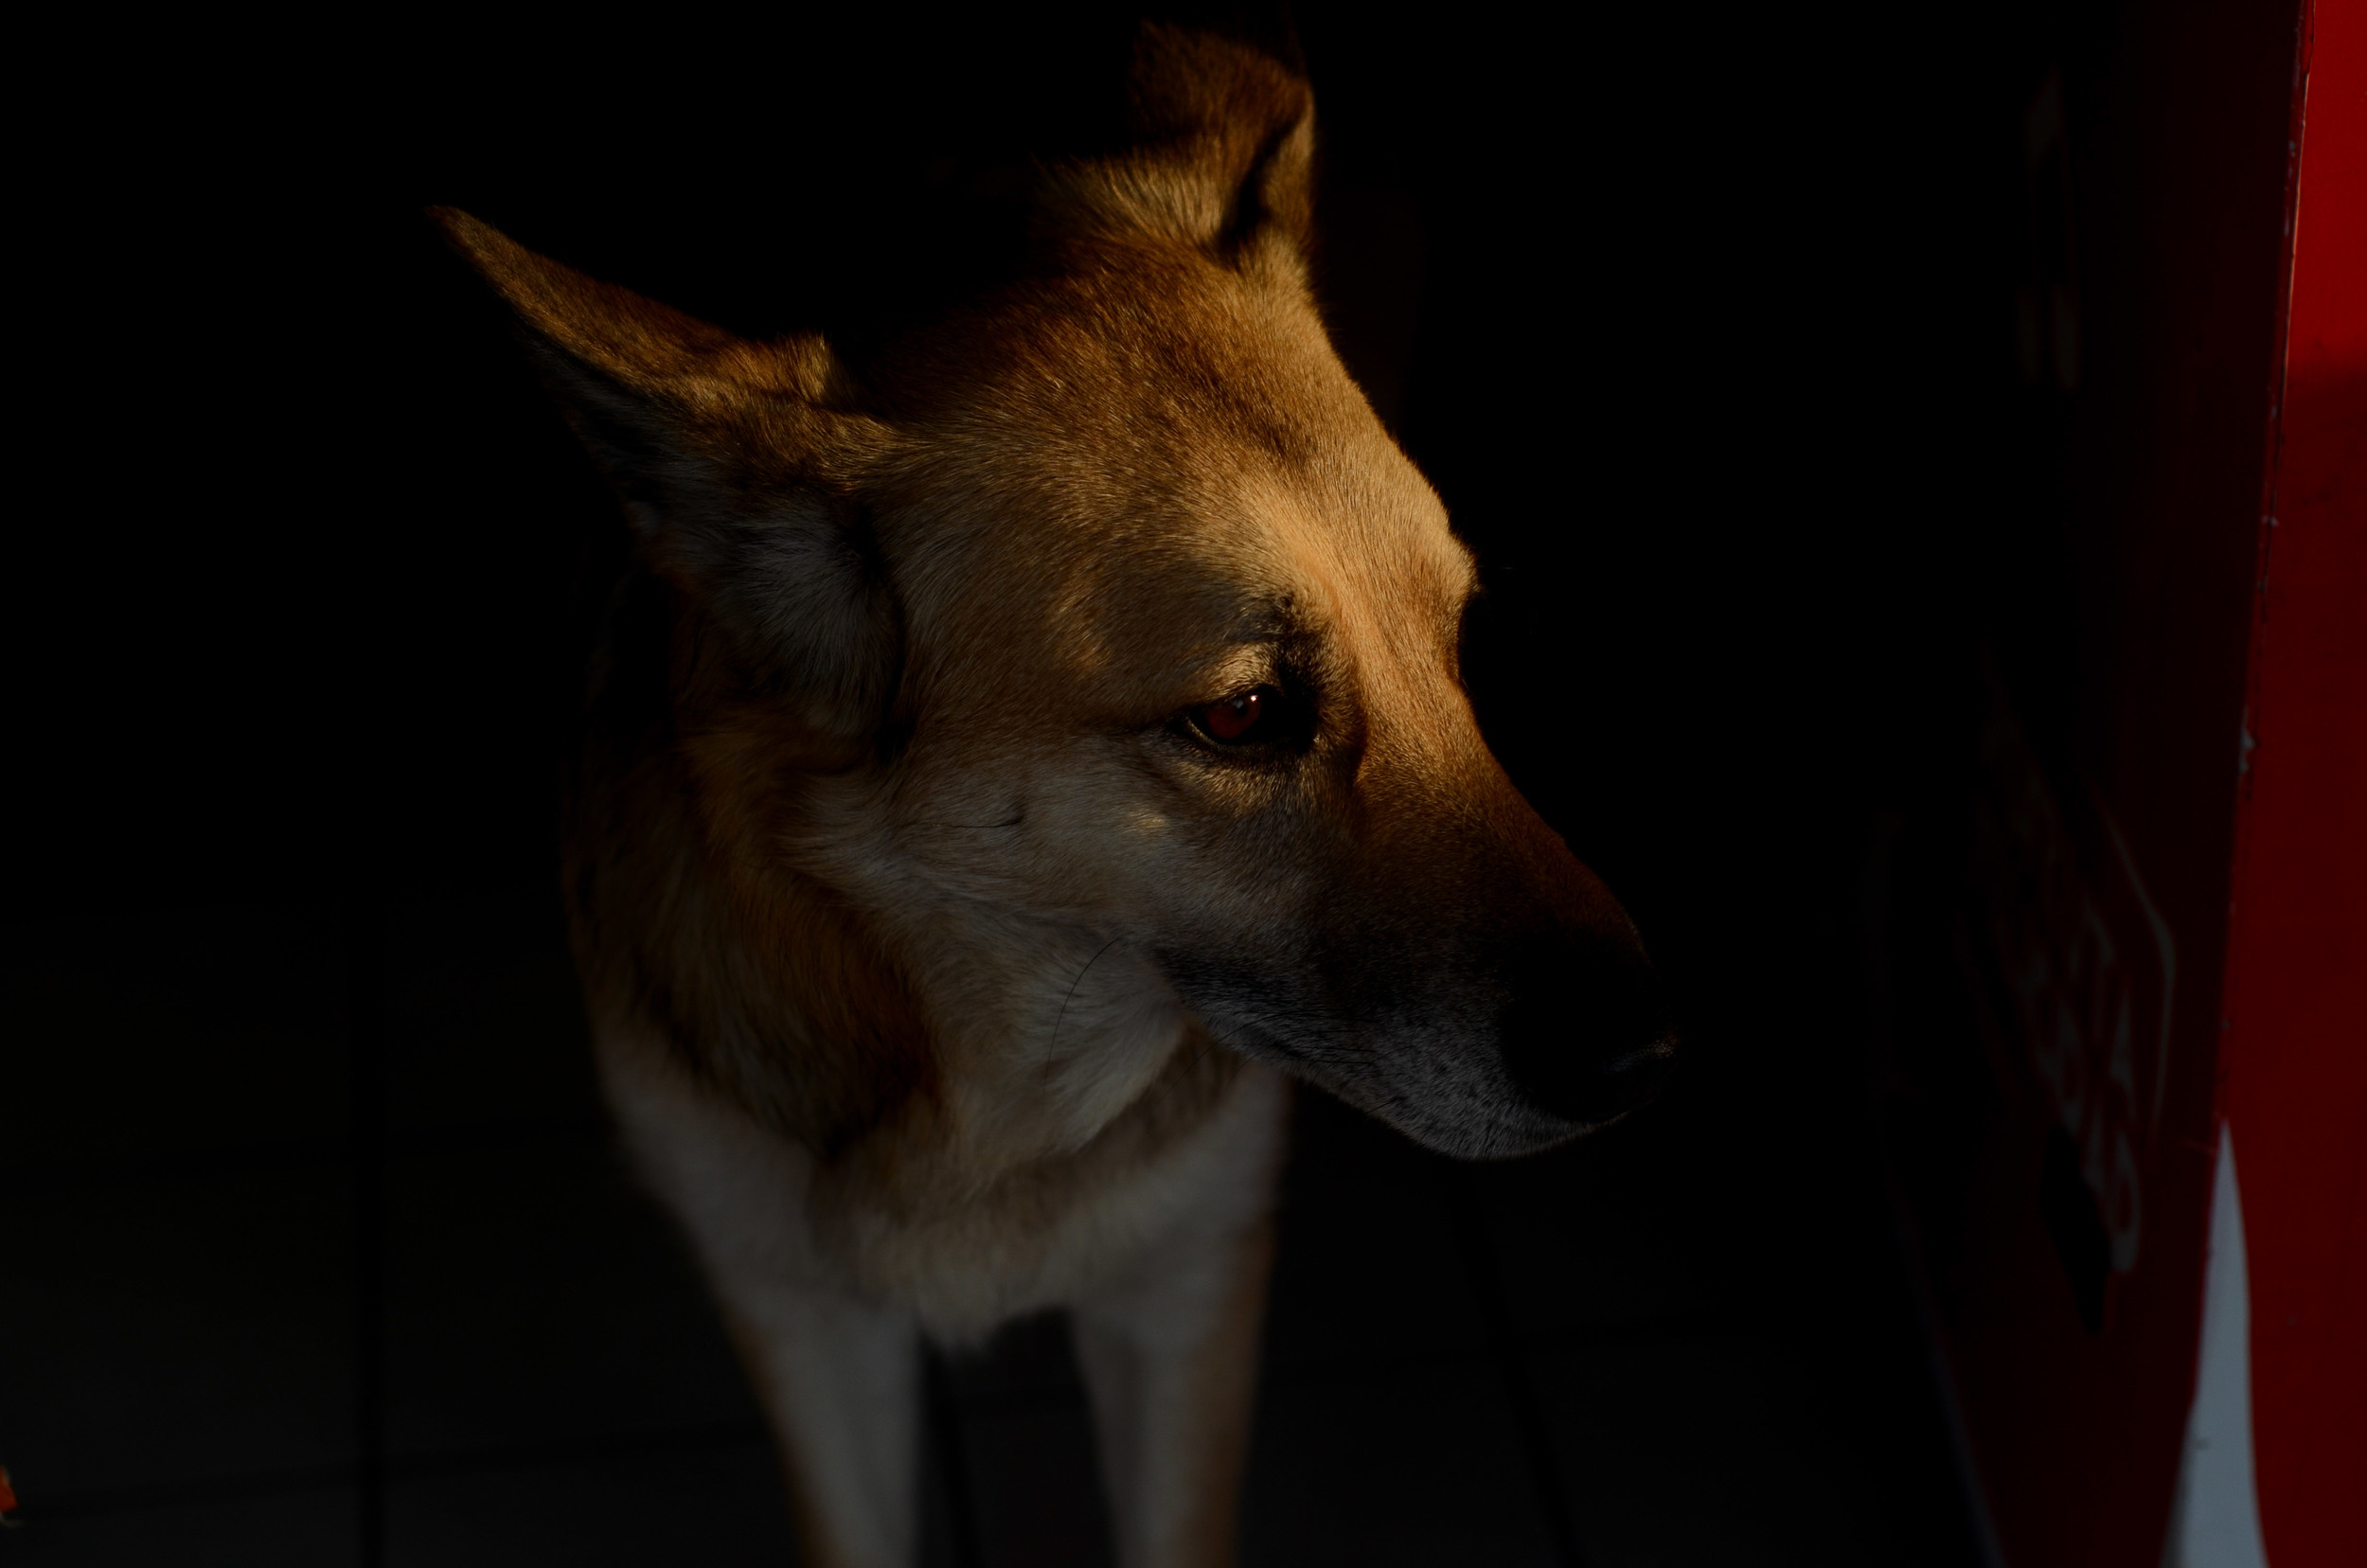 A pensive street dog in the evening light